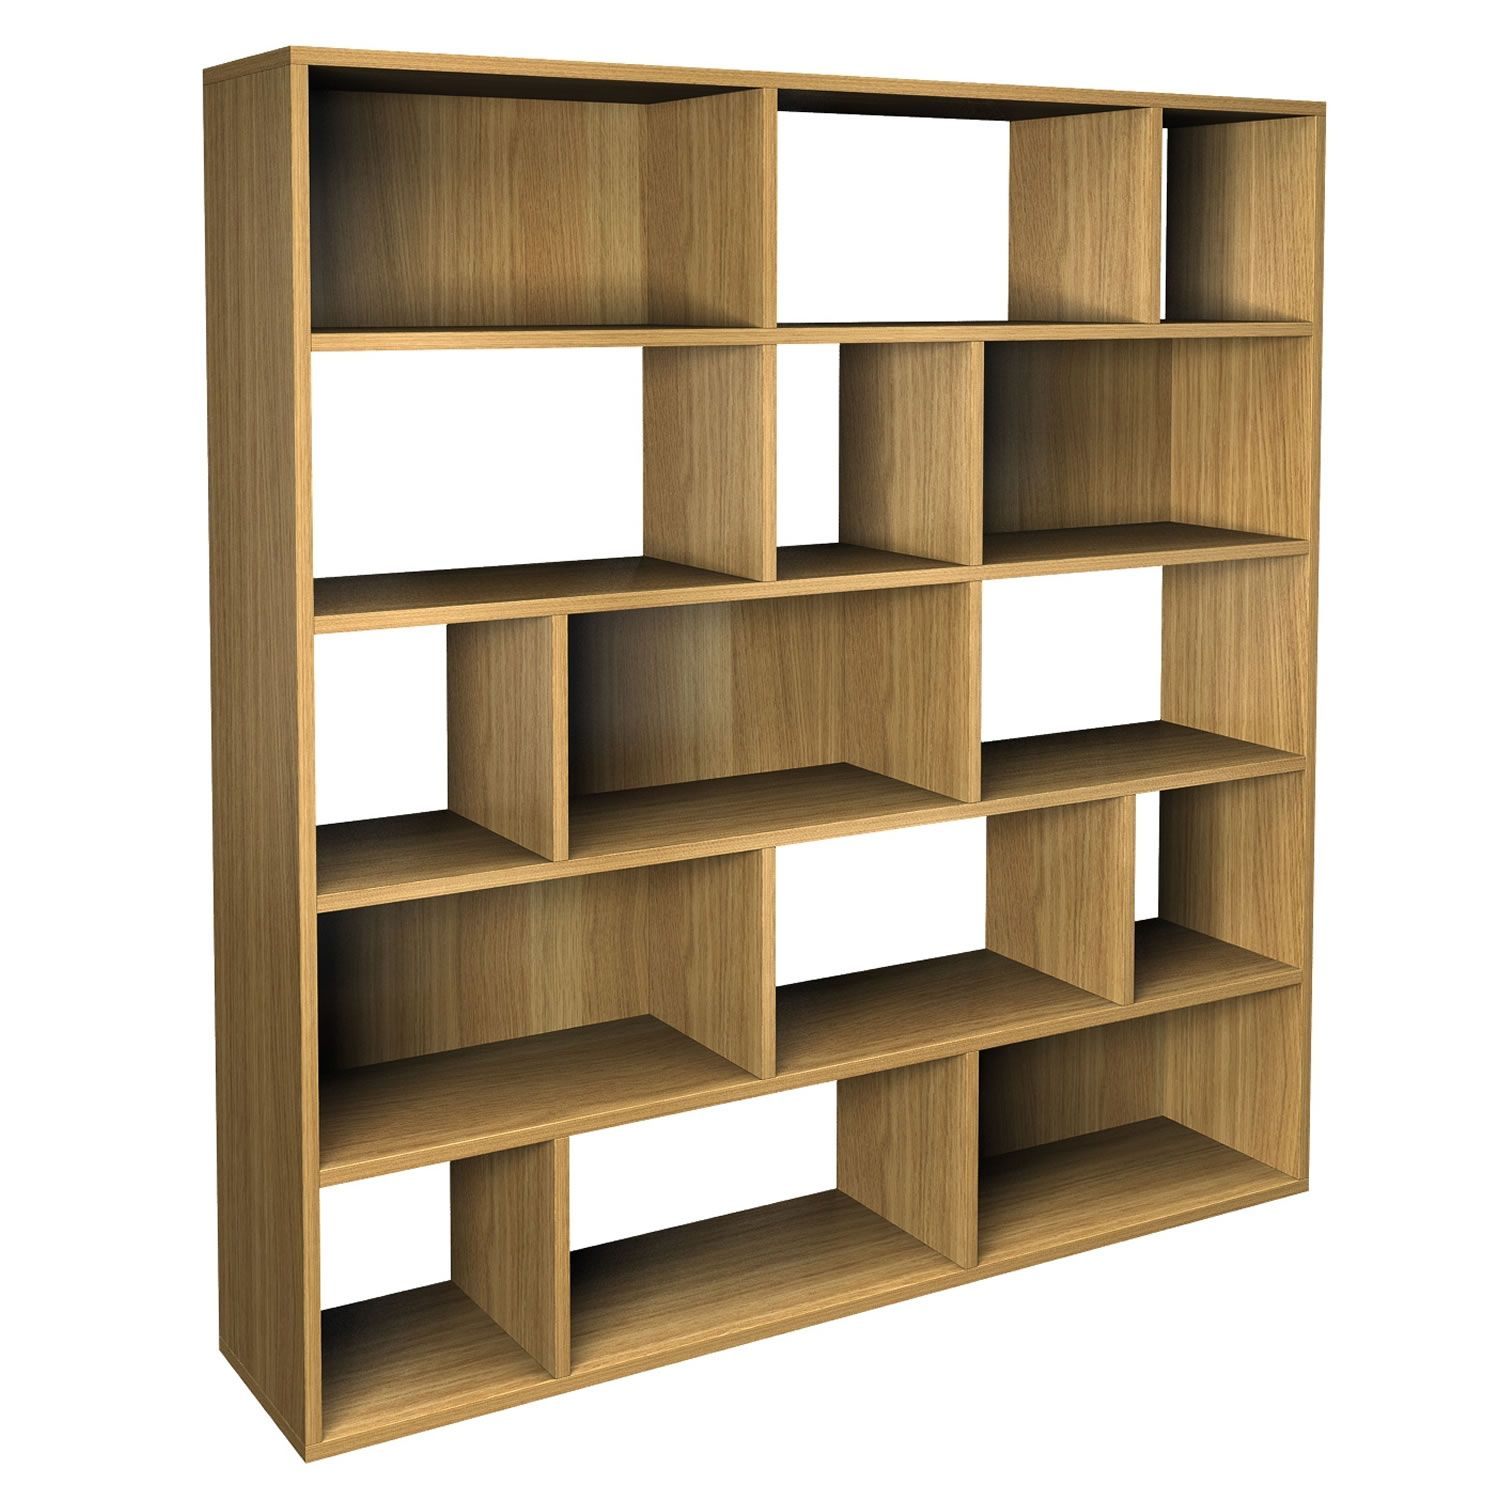 Furniture simple stylish designs pictures of creative bookshelf for modern home office of - Modern bookshelf plans ...